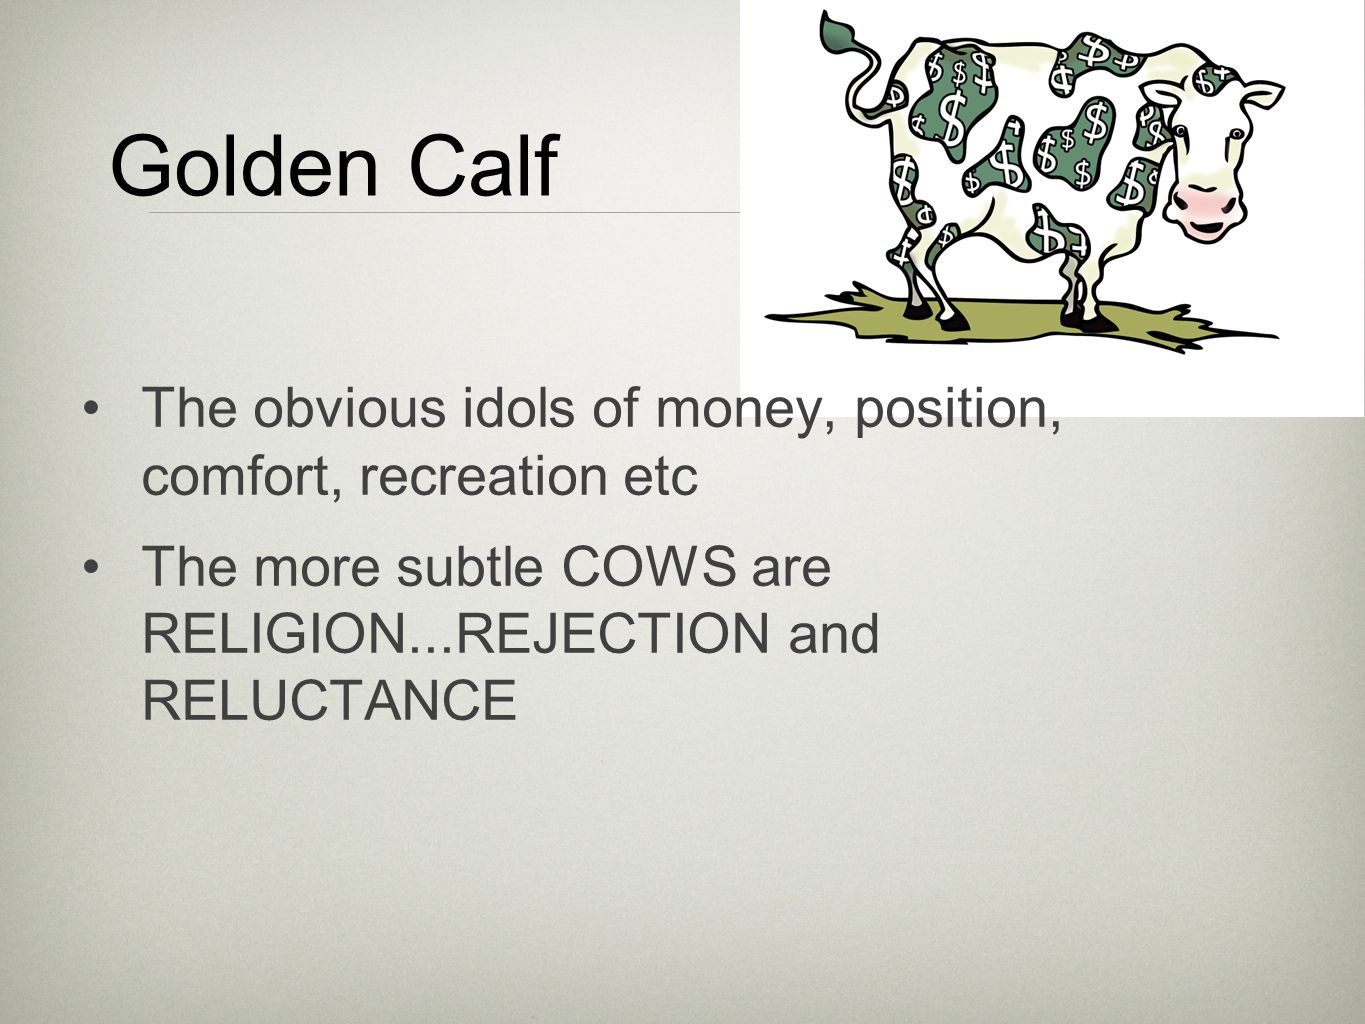 Golden Calf The obvious idols of money, position, comfort, recreation etc The more subtle COWS are RELIGION...REJECTION and RELUCTANCE